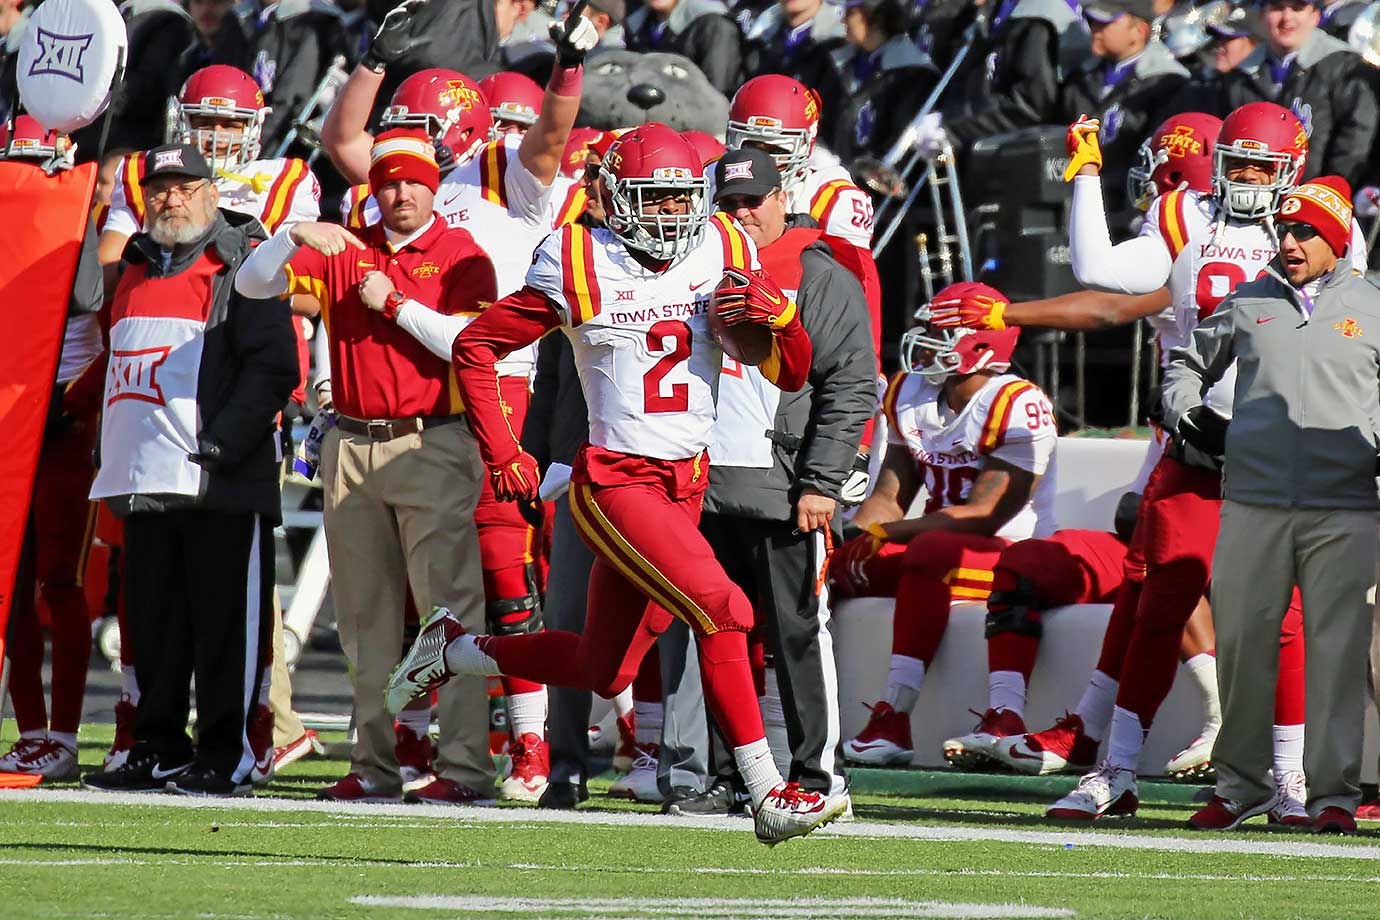 Warren became the first Cyclones player to be named Big 12 Offensive Freshman of the Year, as he led Iowa State with 1,366 rushing yards and five touchdowns. In a loss at Texas Tech, Warren rushed for 245 yards on 23 carries, one of six games in which he ran for more than 125 yards.